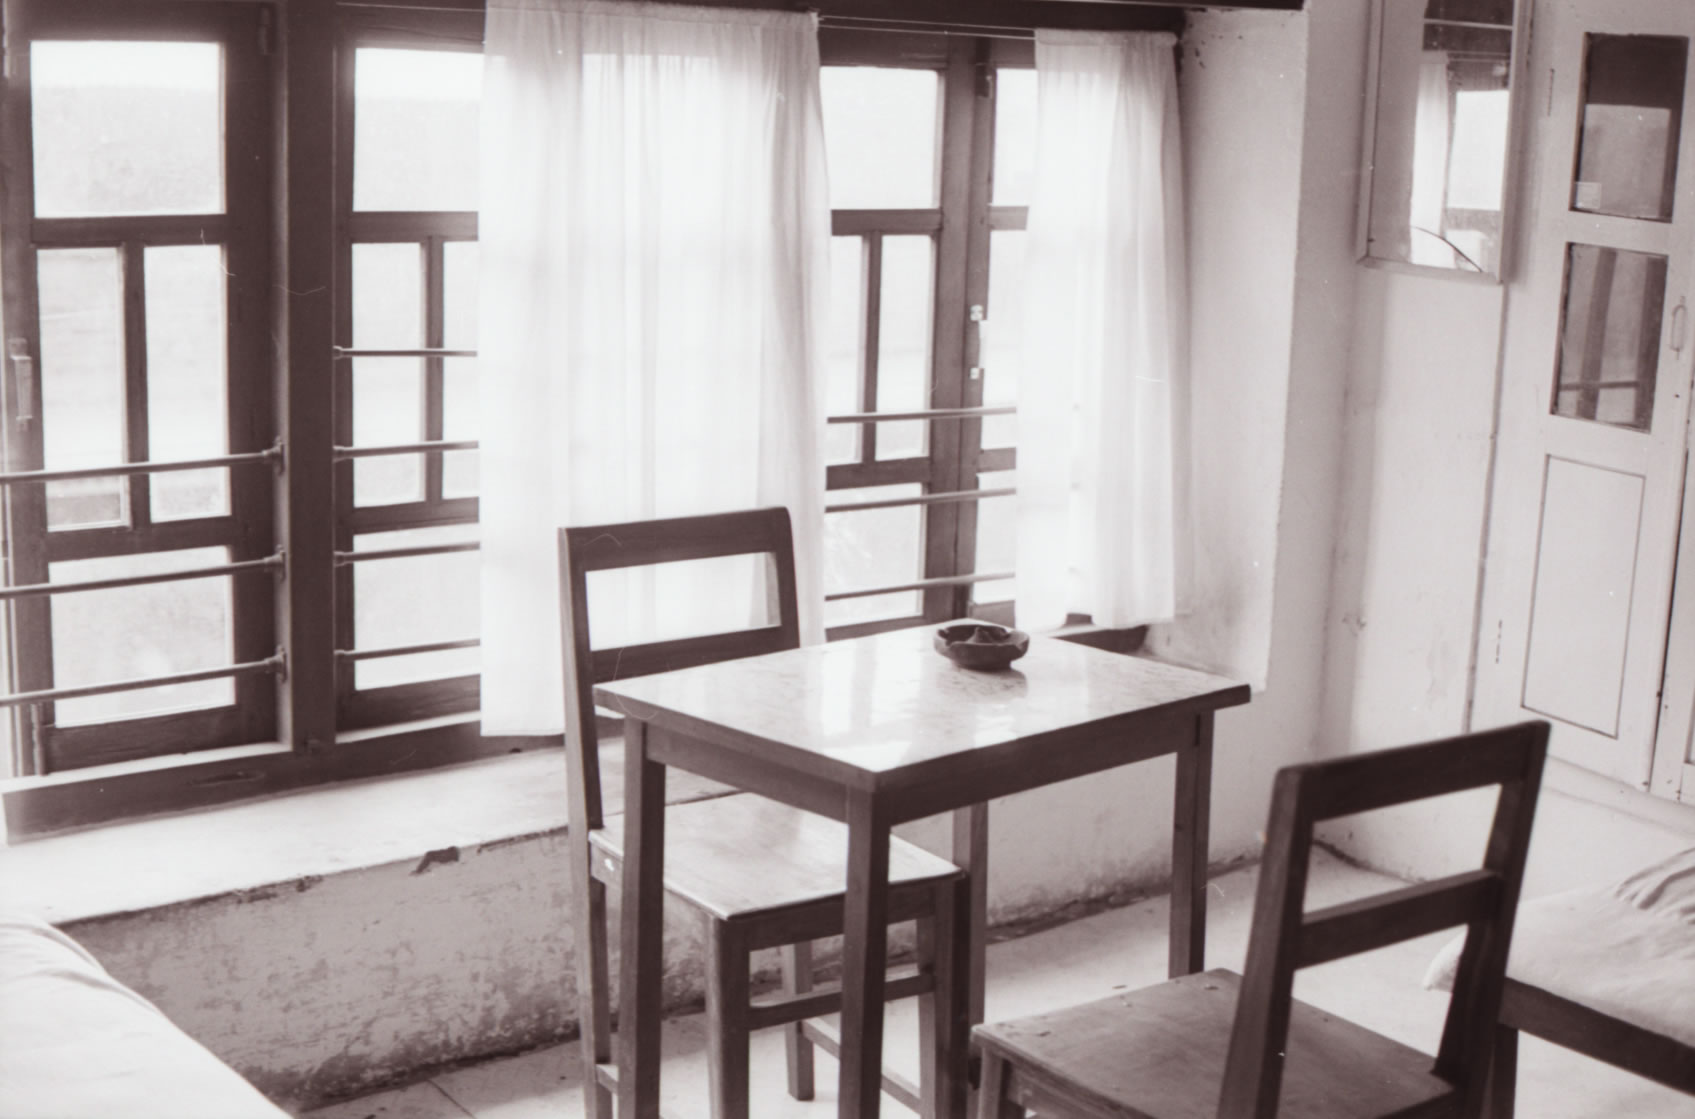 TABLE AND CHAIRS NEPAL